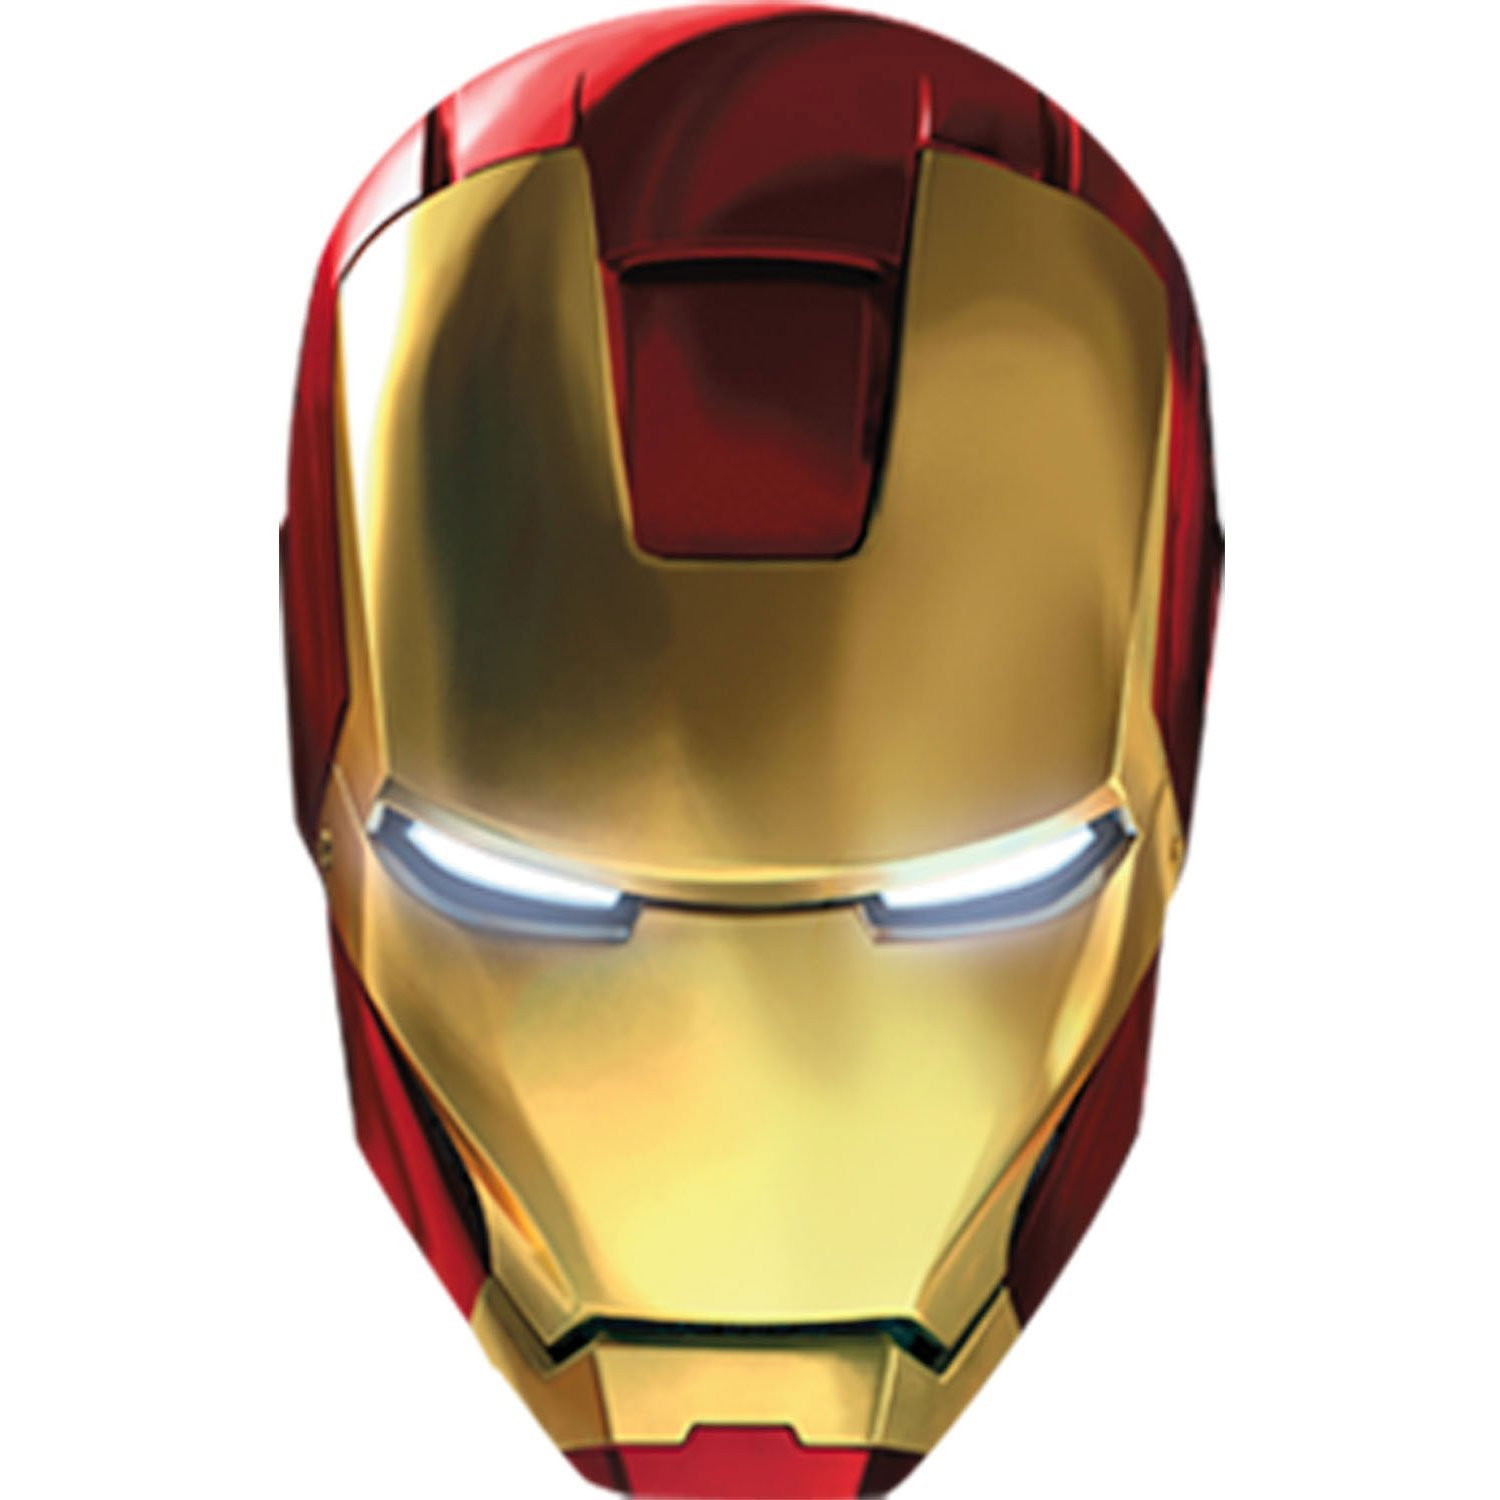 Iron-Man-Face-1.jpg